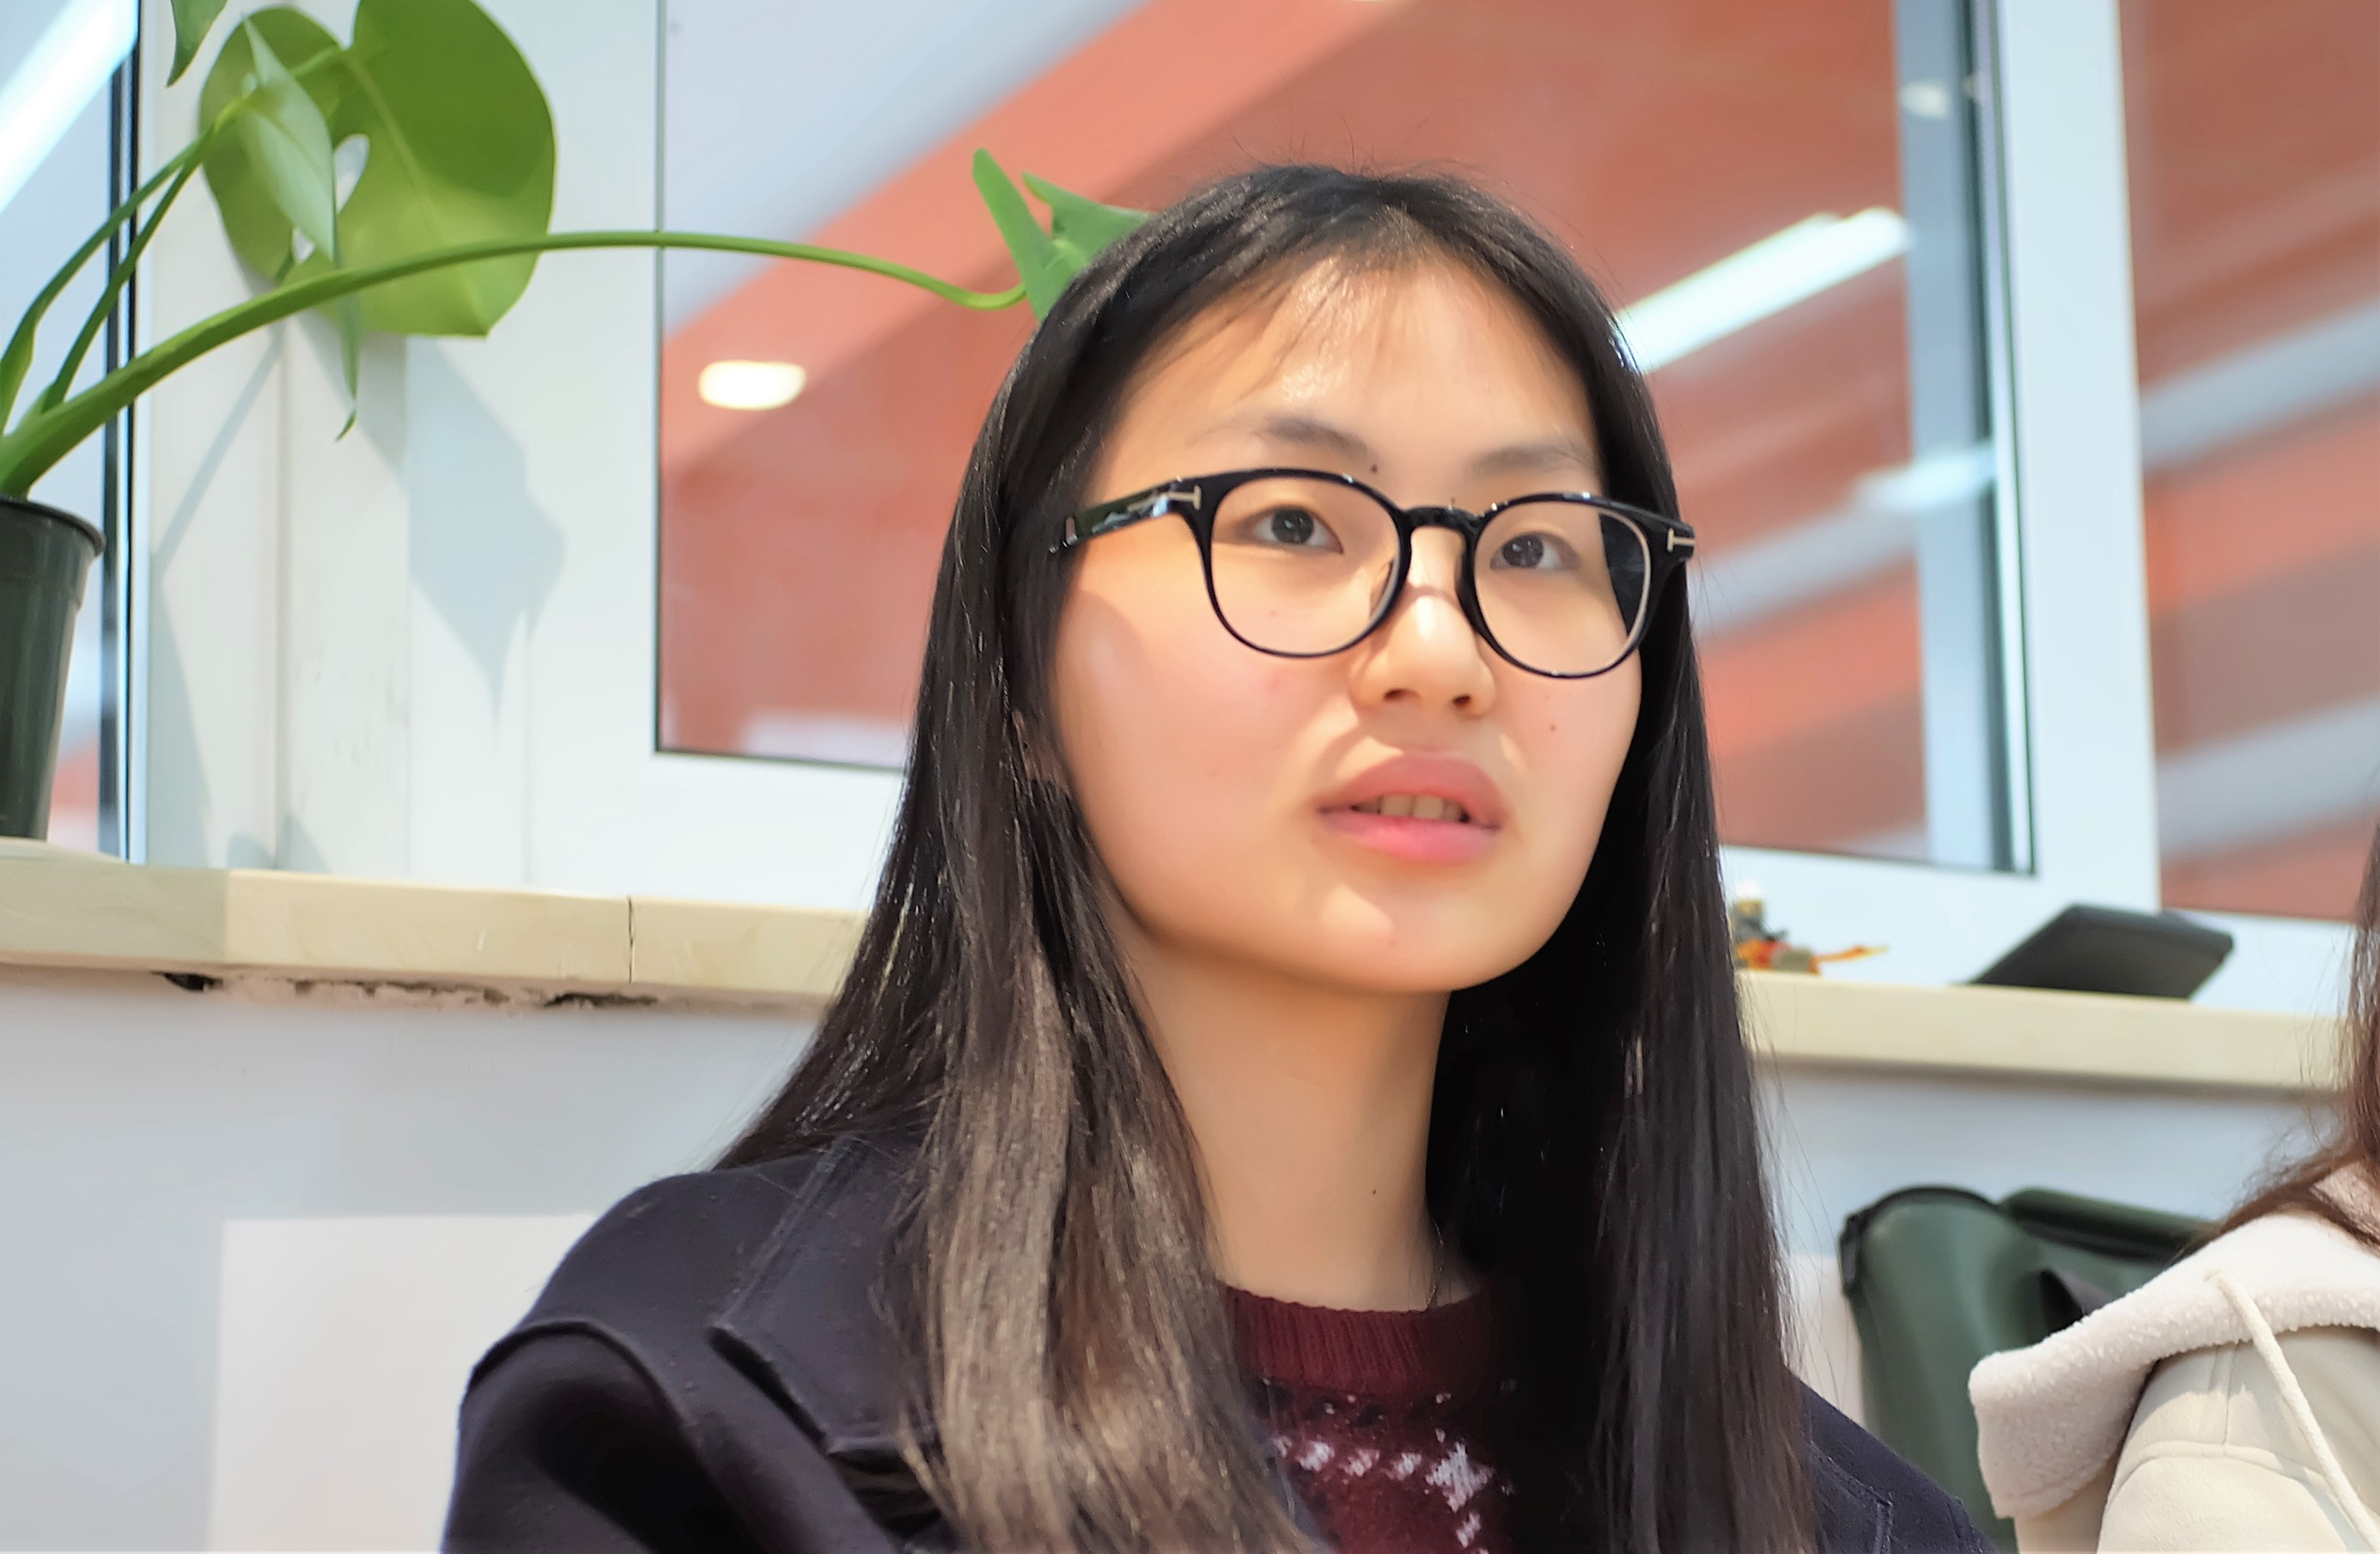 Ningbo student is on journey of self-discovery